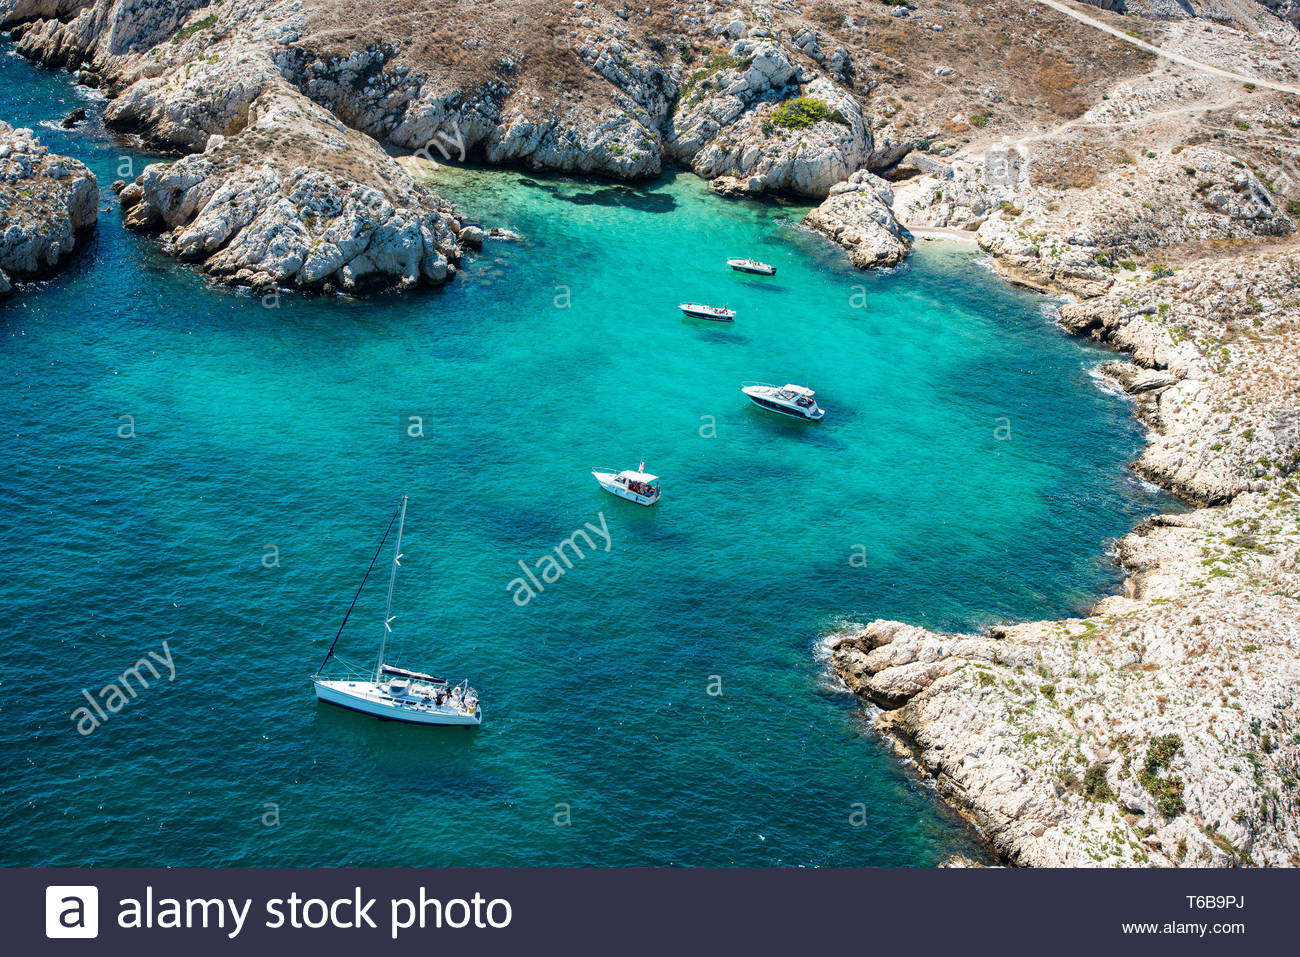 Marseille (south-eastern France): aerial view of amateur sailors in a cove of the Frioul archipelago, in the natural harbour of Marseille - Stock Image